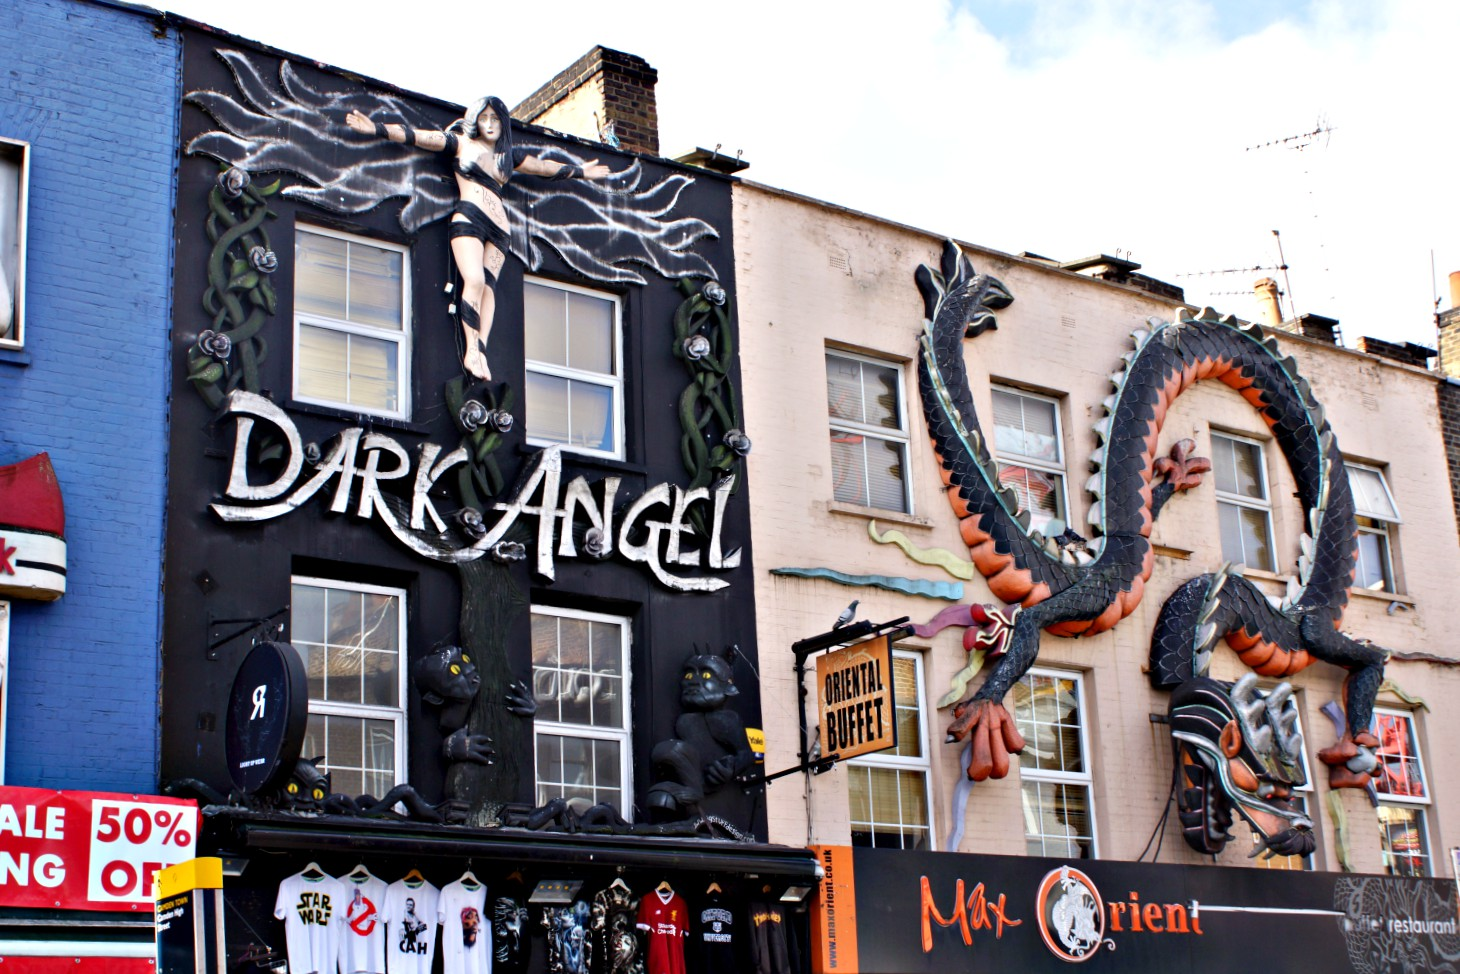 Camden Dark Angel